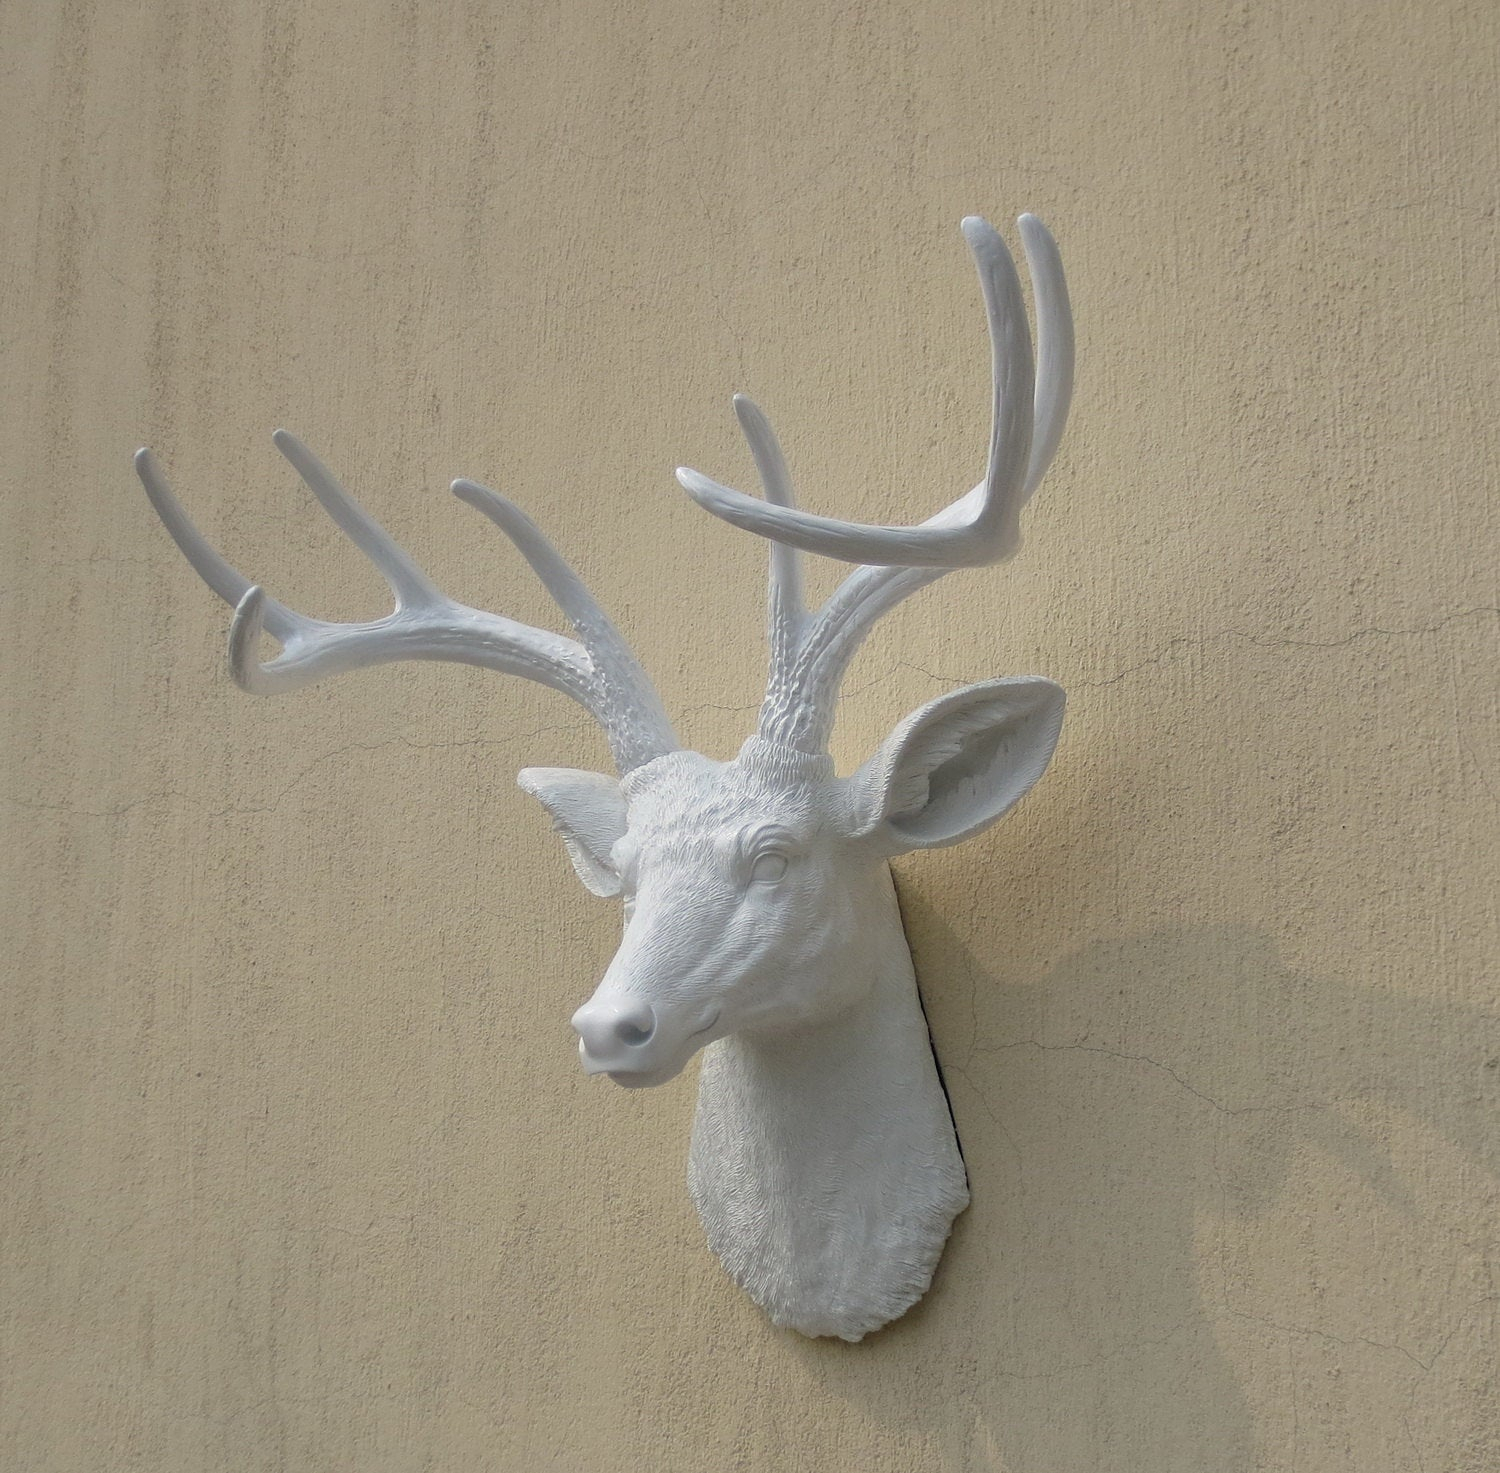 Most Recently Released Faux Animal Head Wall Decor – Pmpresssecretariat Within Large Deer Head Faux Taxidermy Wall Decor (View 12 of 20)